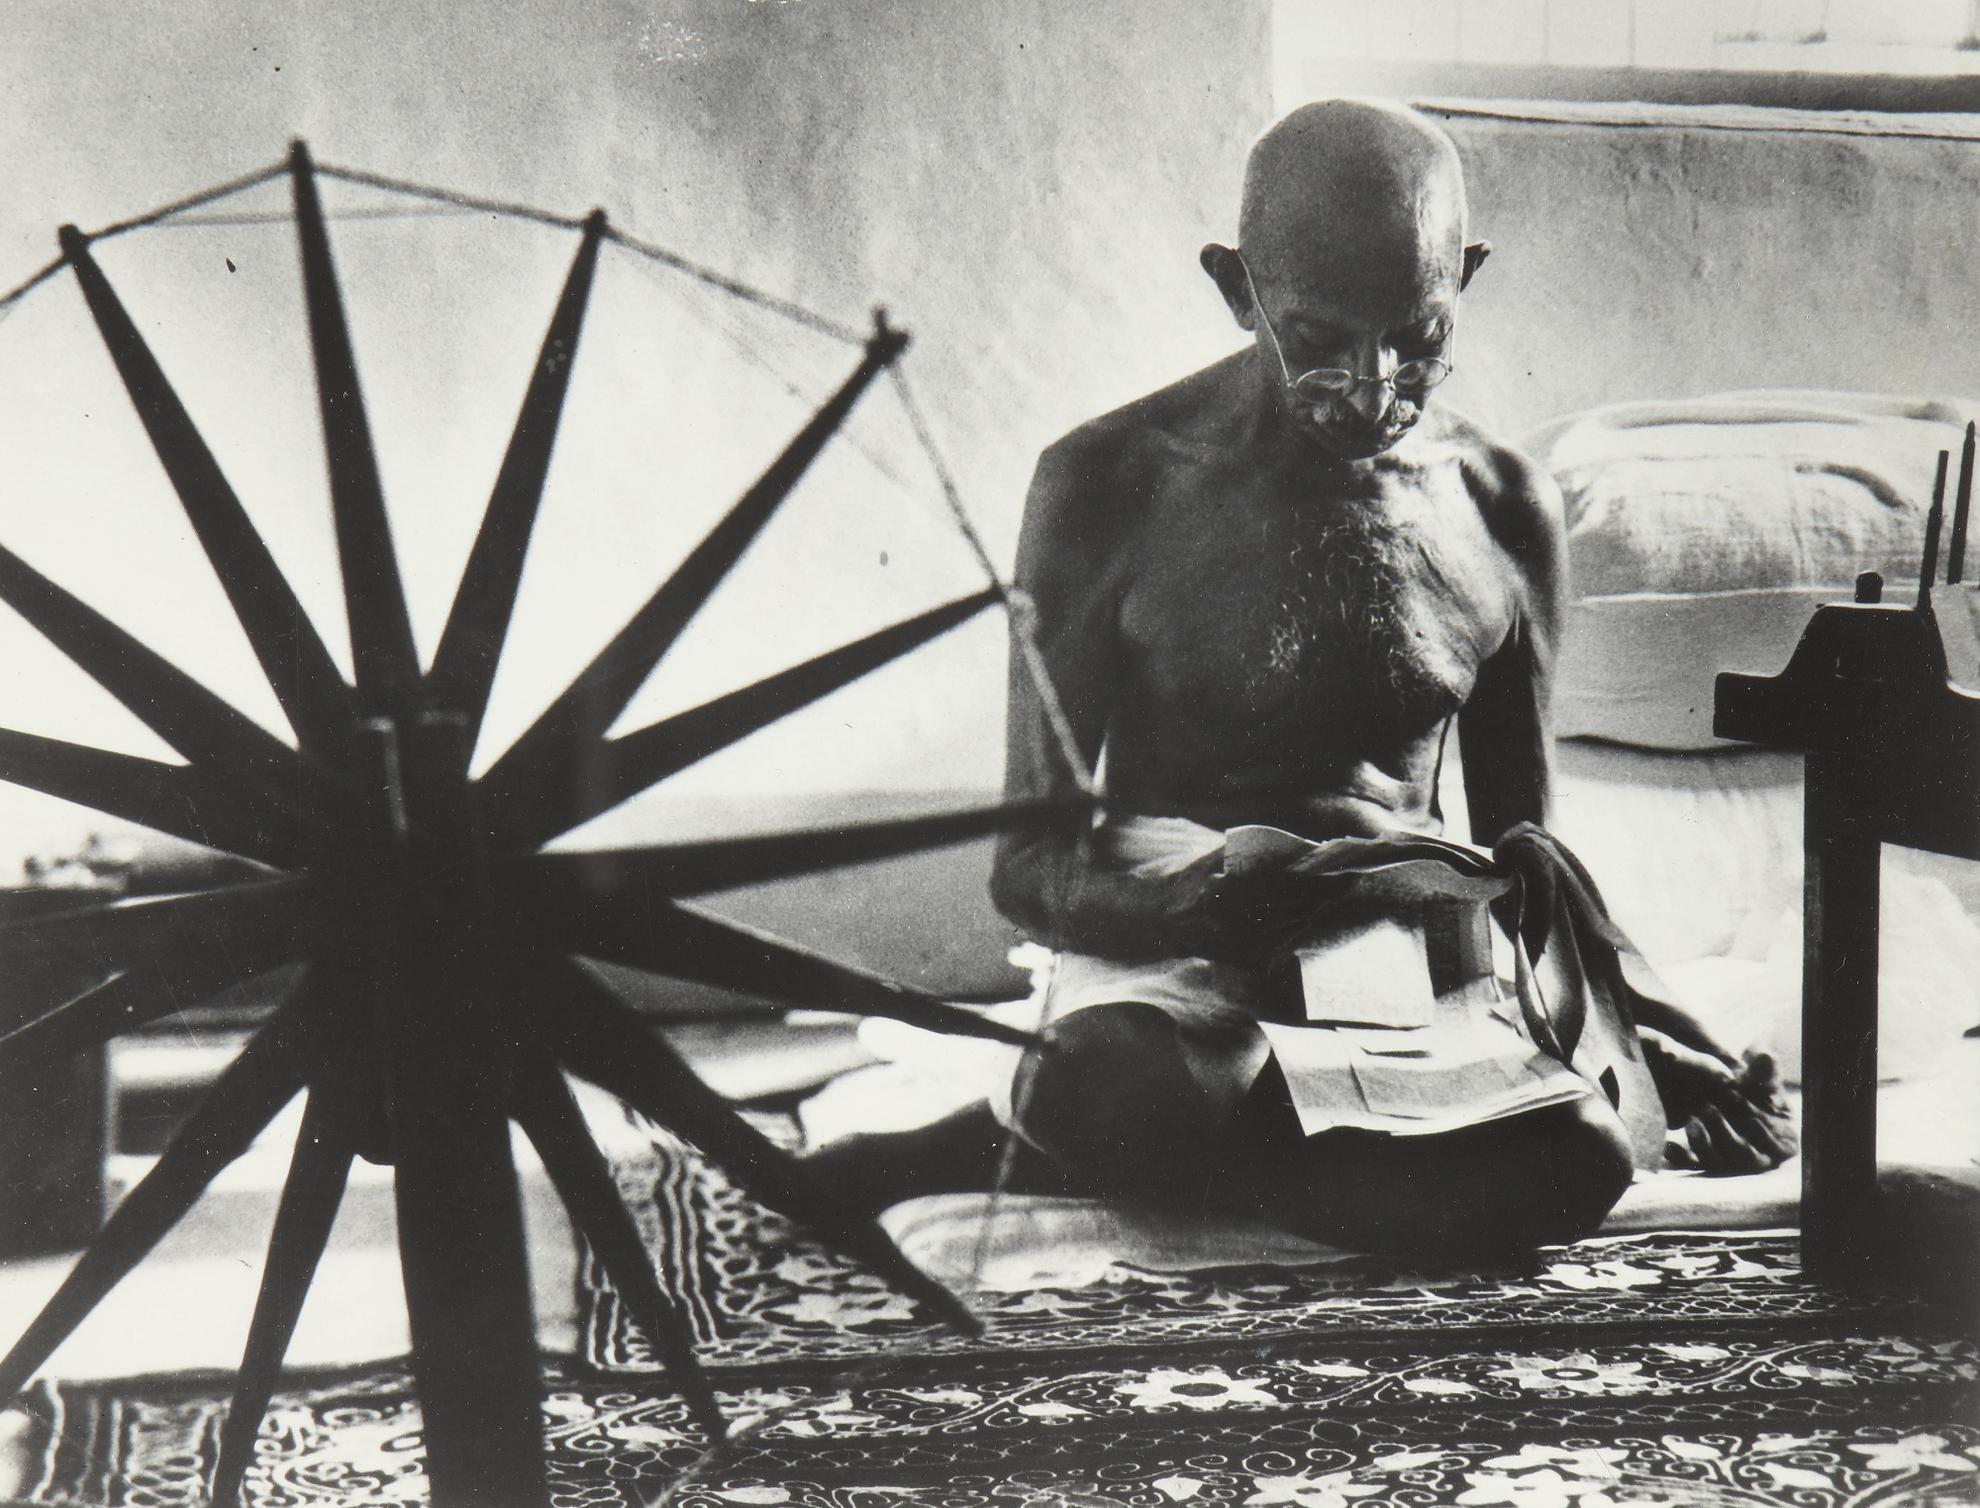 Margaret Bourke-White-Mahatma Gandhi, The Spinner-1980